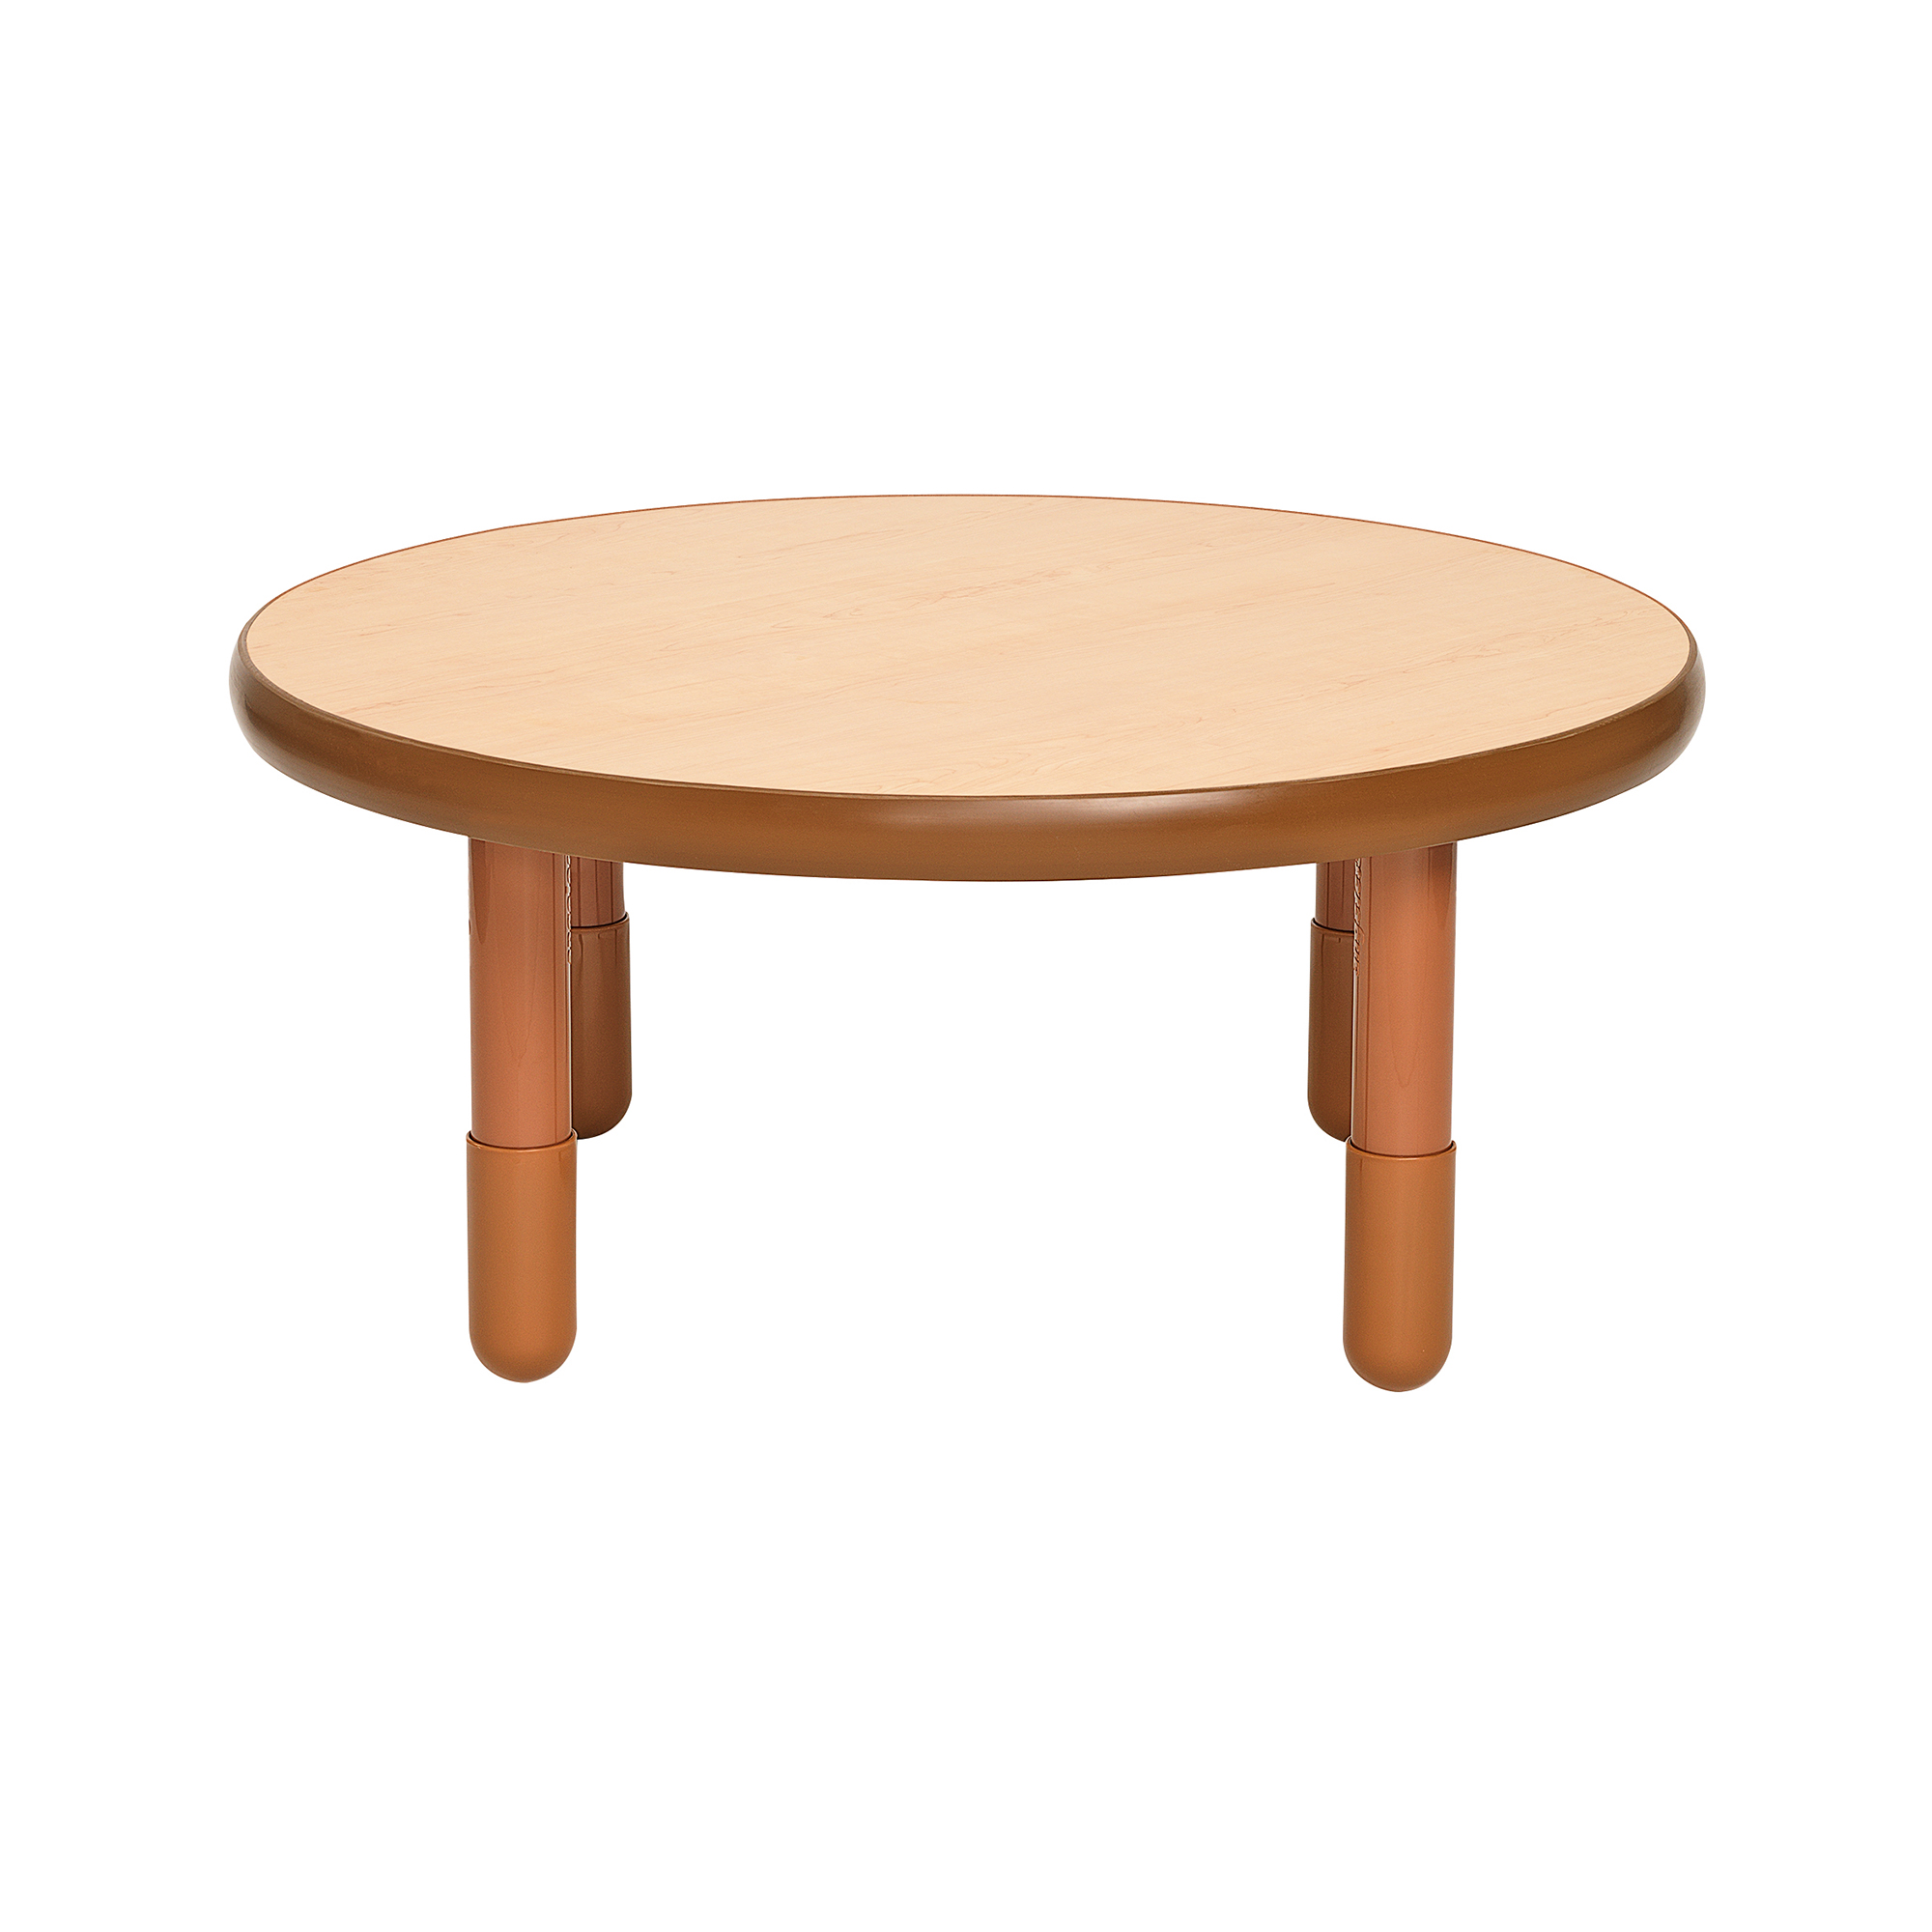 Baseline 36 Diameter Round Table Natural With 16 Legs Children S Factory